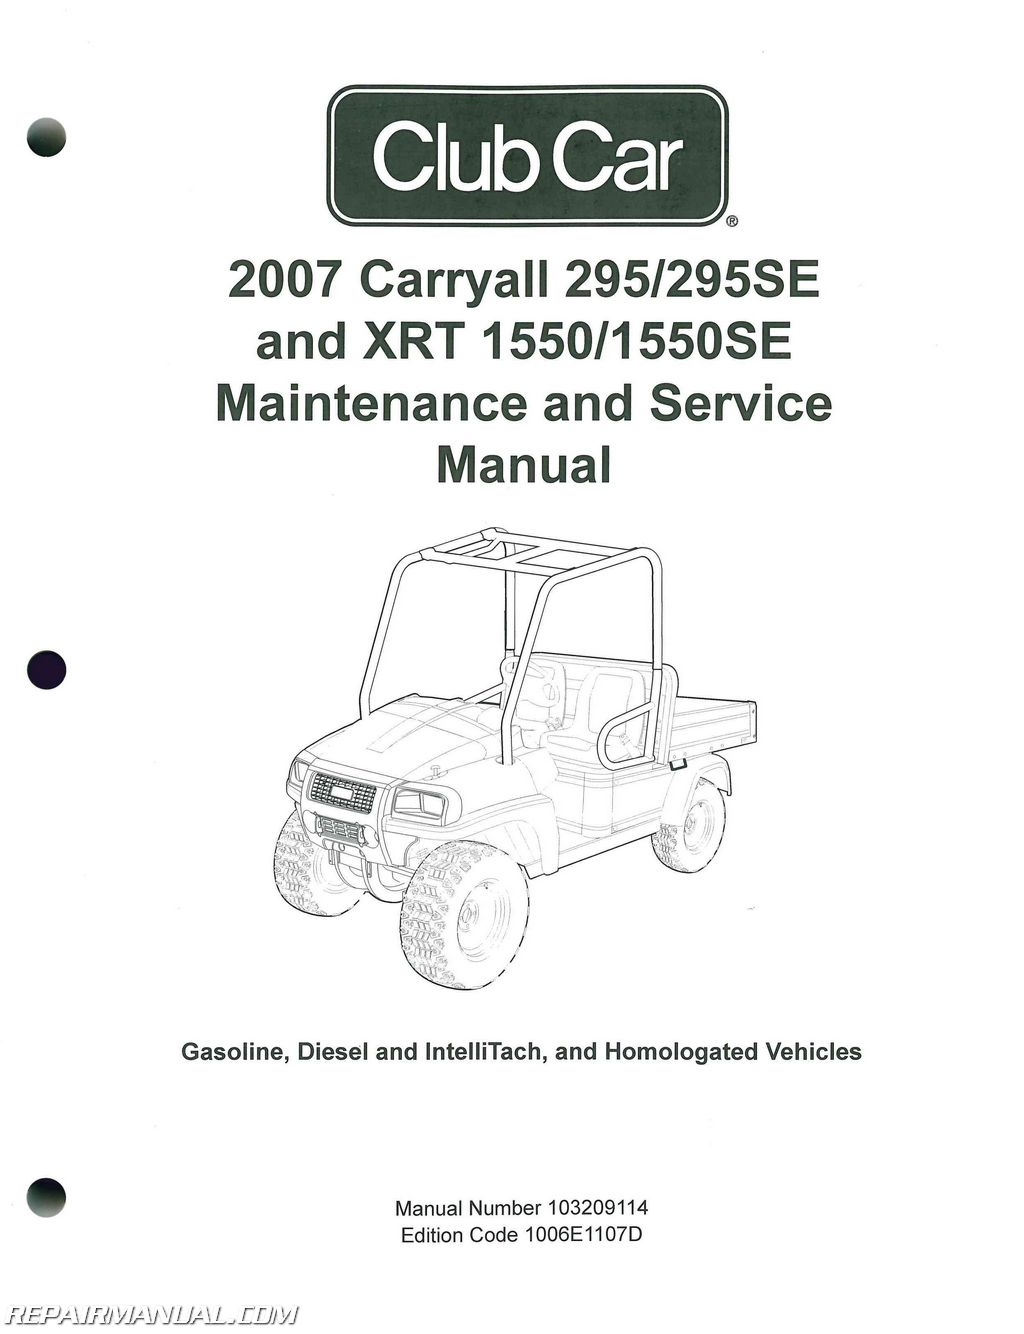 hight resolution of 2007 club car carryall service manual 295 295se xrt 1550 1550se rh repairmanual com gas club car wiring diagram 48 volt club car wiring diagram